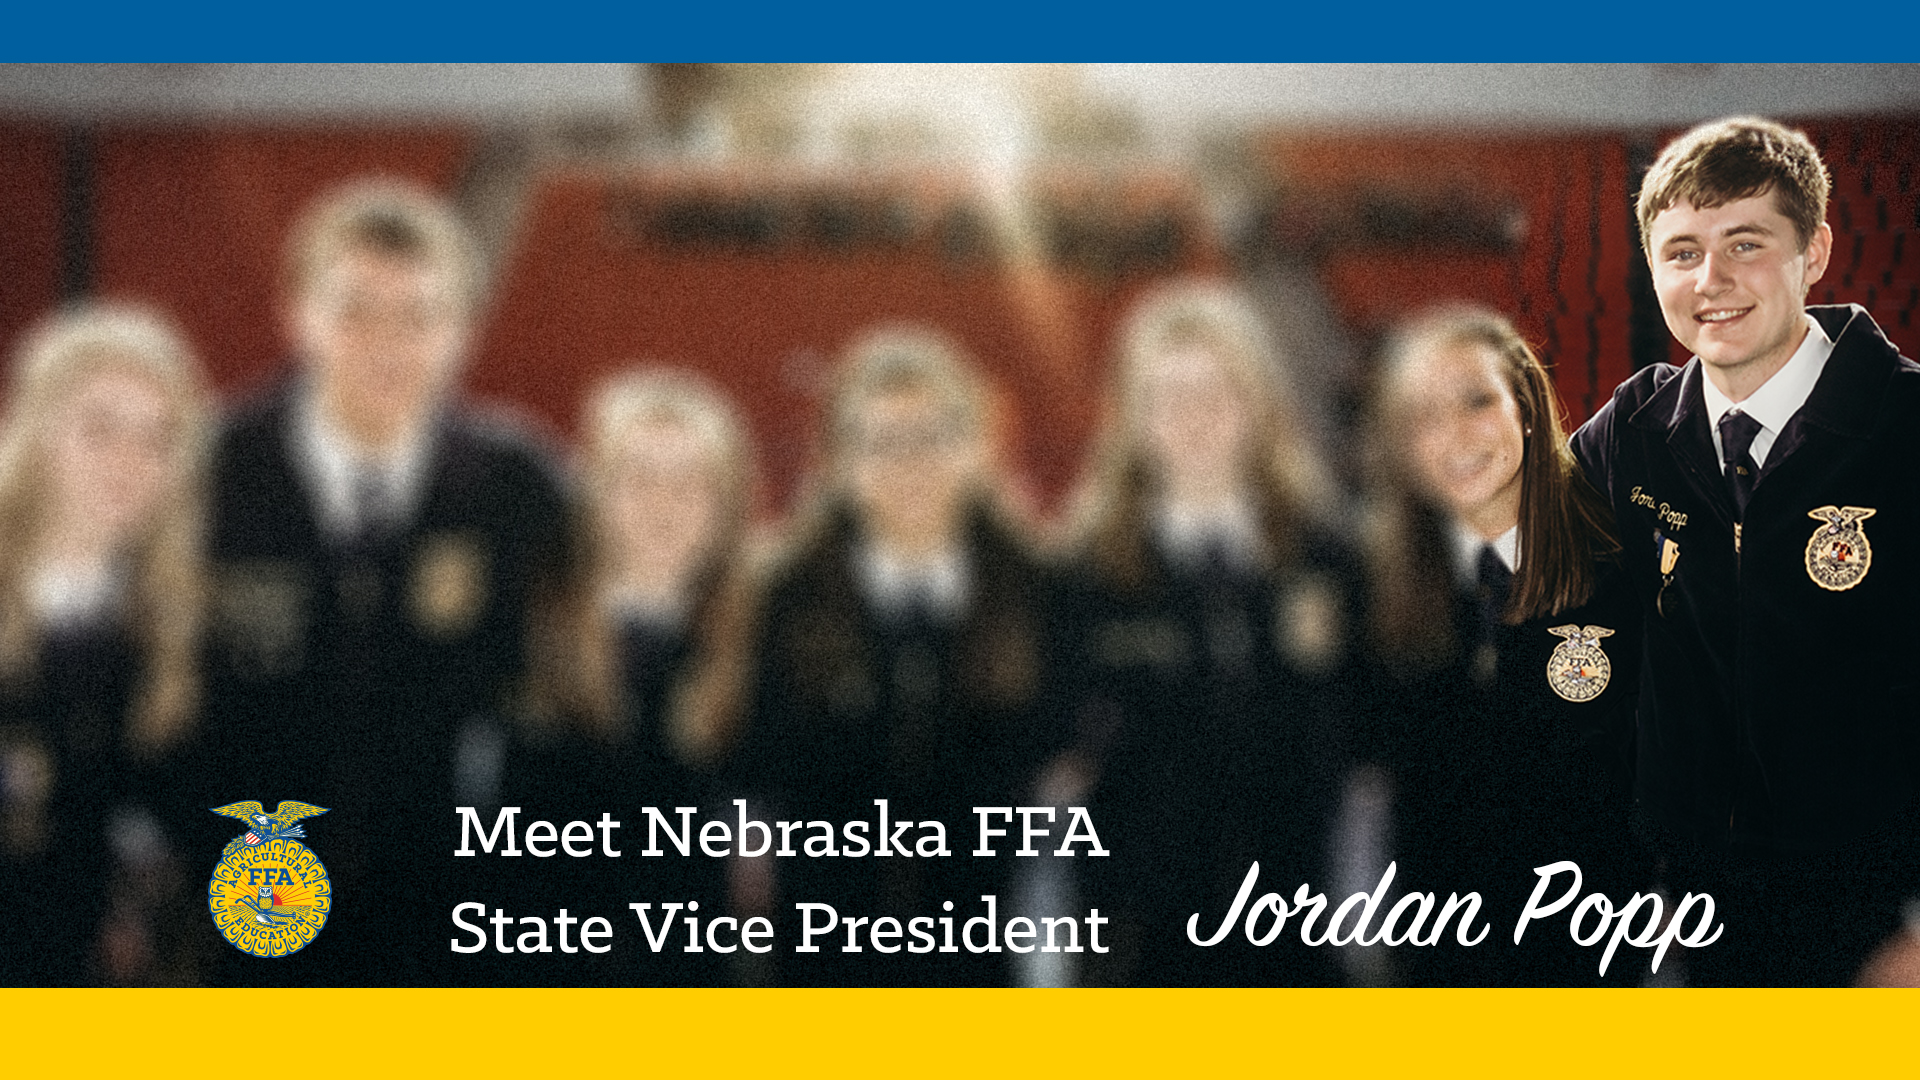 Meet Your 2018-19 Nebraska FFA State Vice President: Jordan Popp